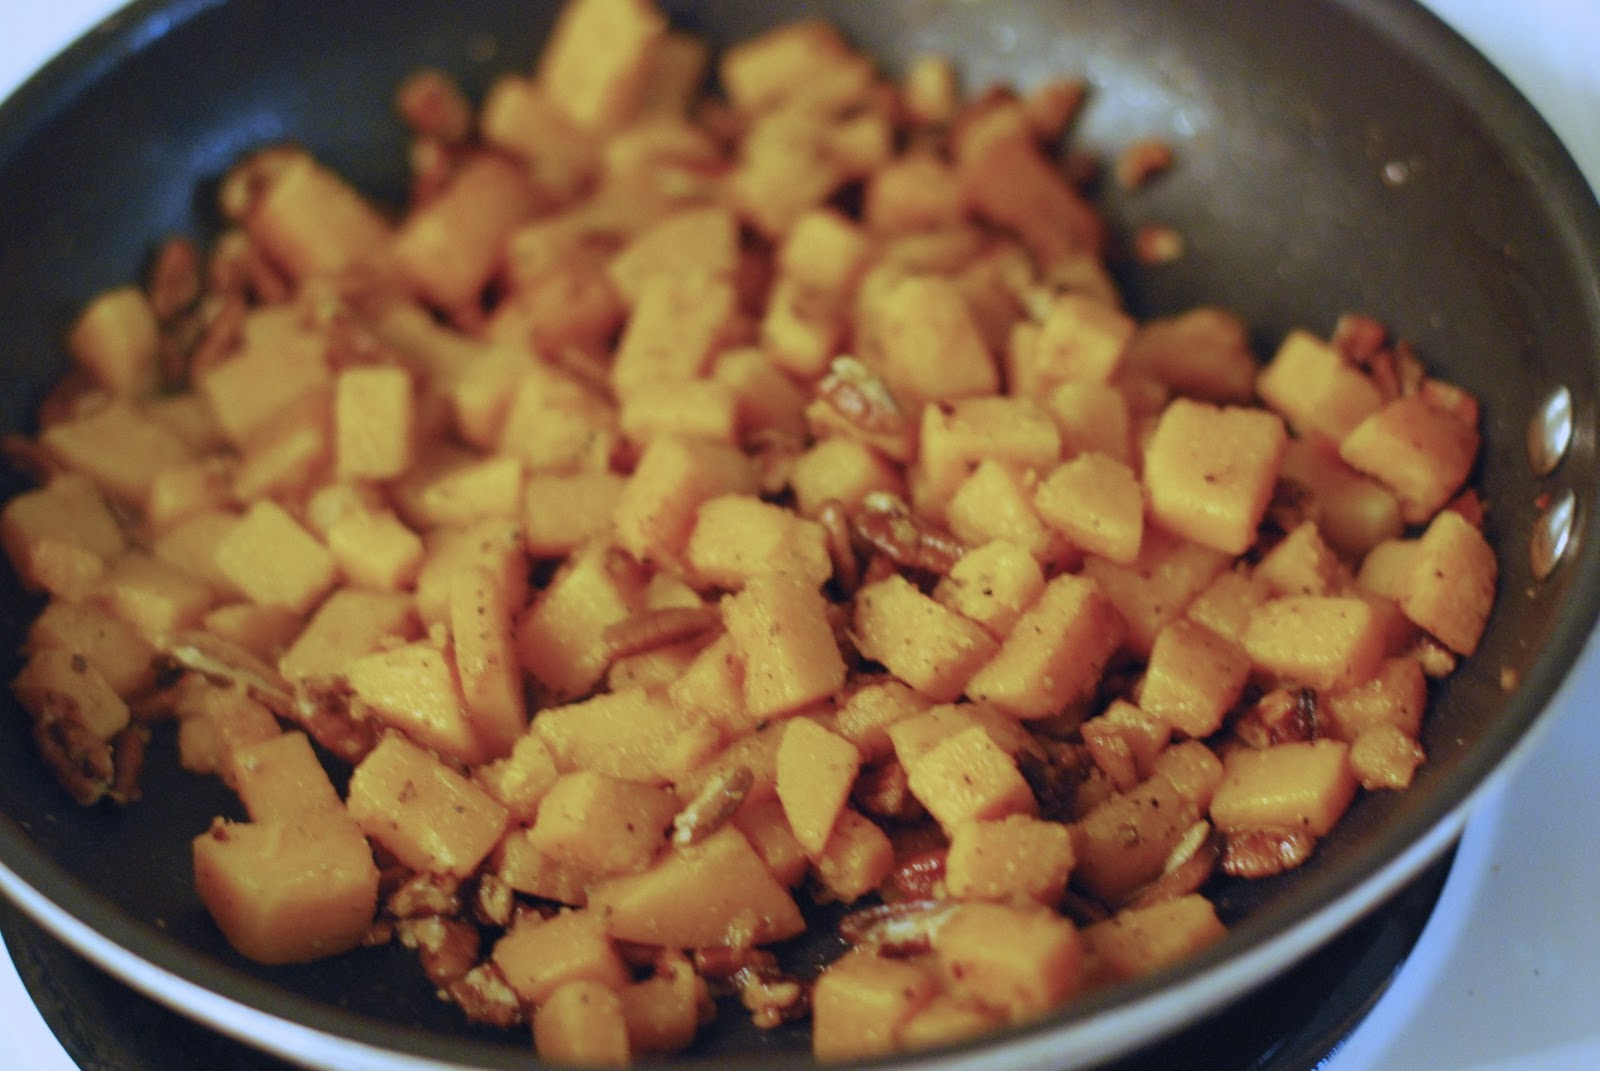 Miss Tracey Nolan: Recipe: Pasta with Butternut Squash and Pecans